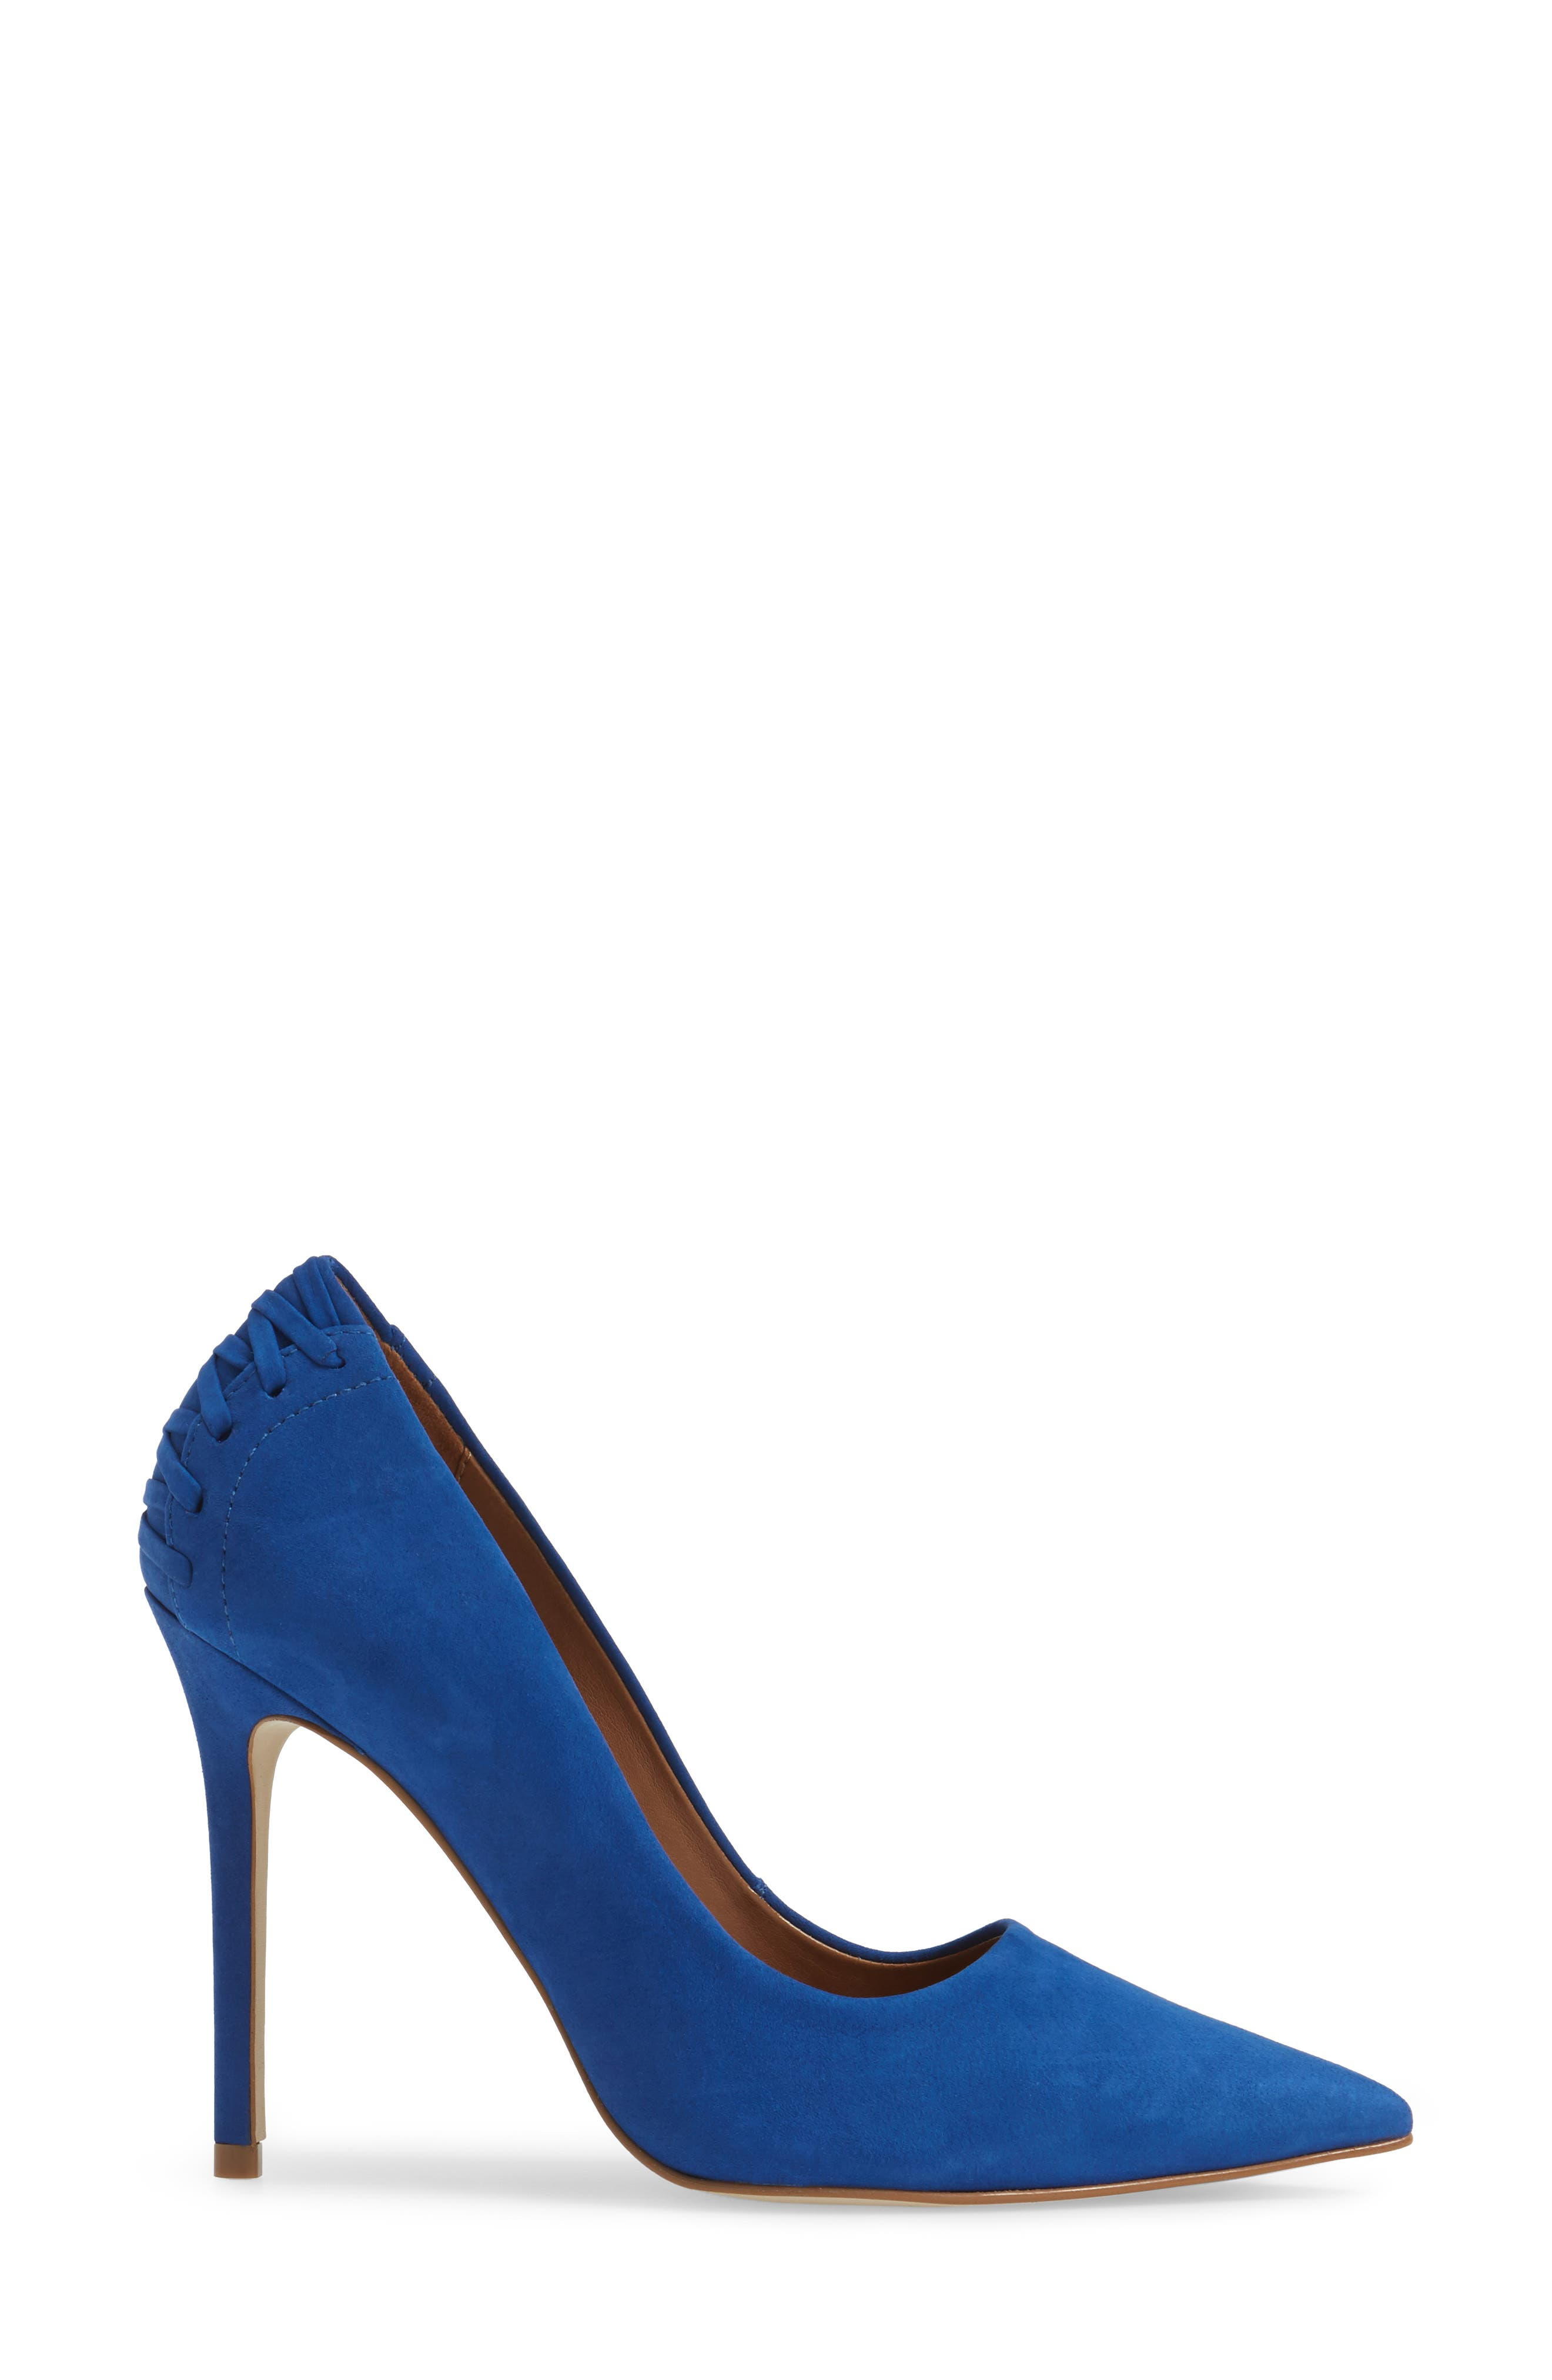 Paiton Laced Heel Pump,                             Alternate thumbnail 3, color,                             Blue Nubuck